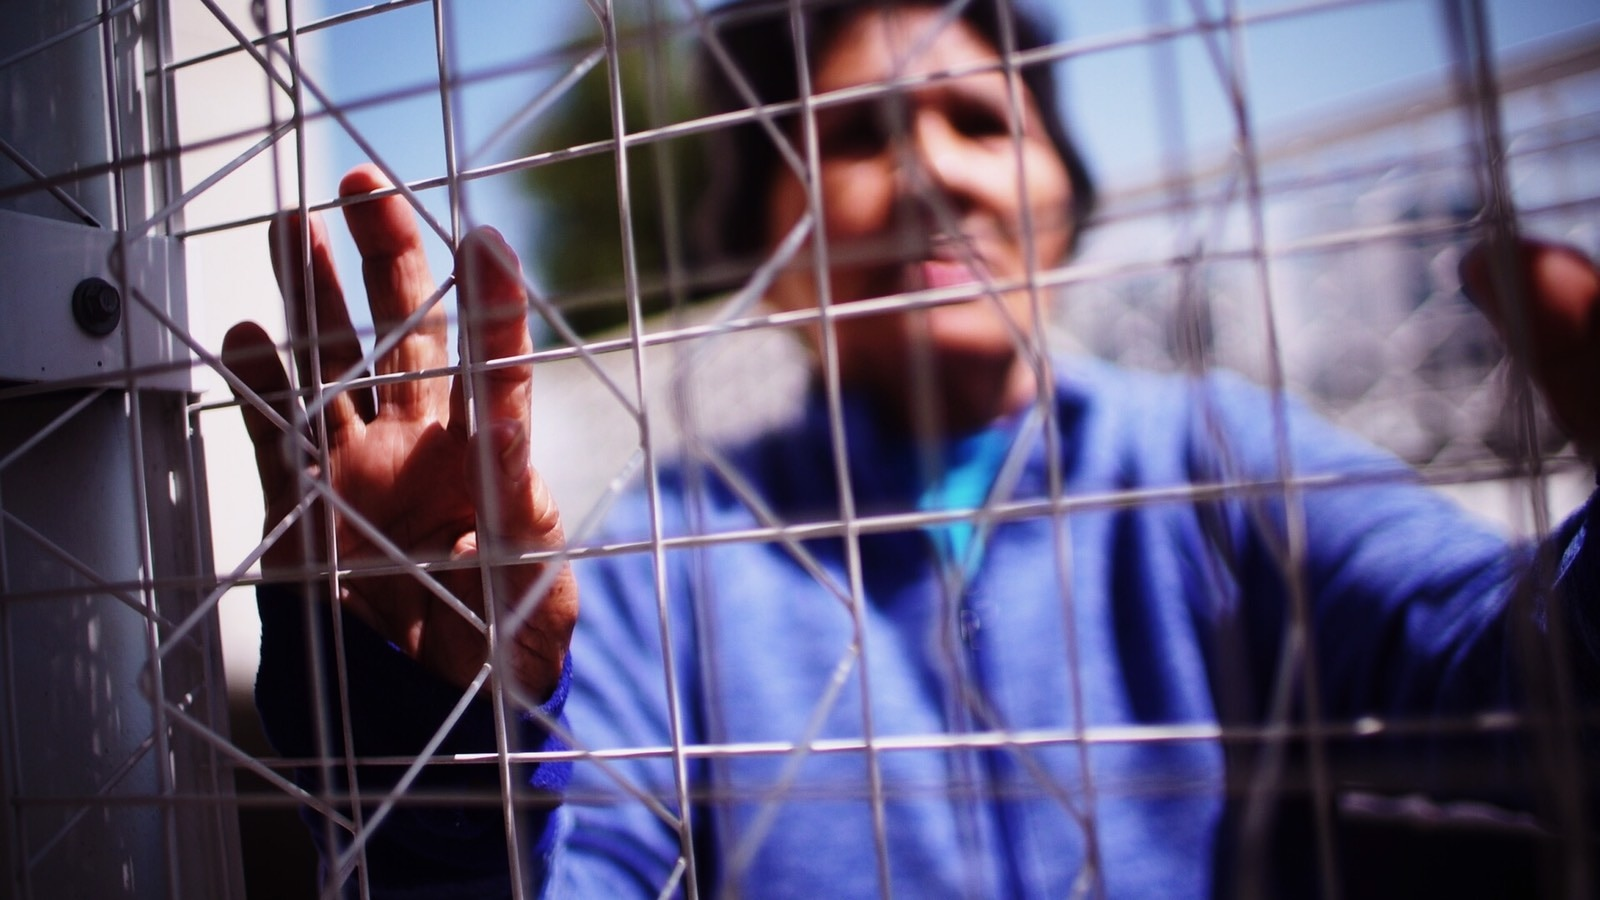 Nanay Fedelina talks about her life in captivity for the past 65 years